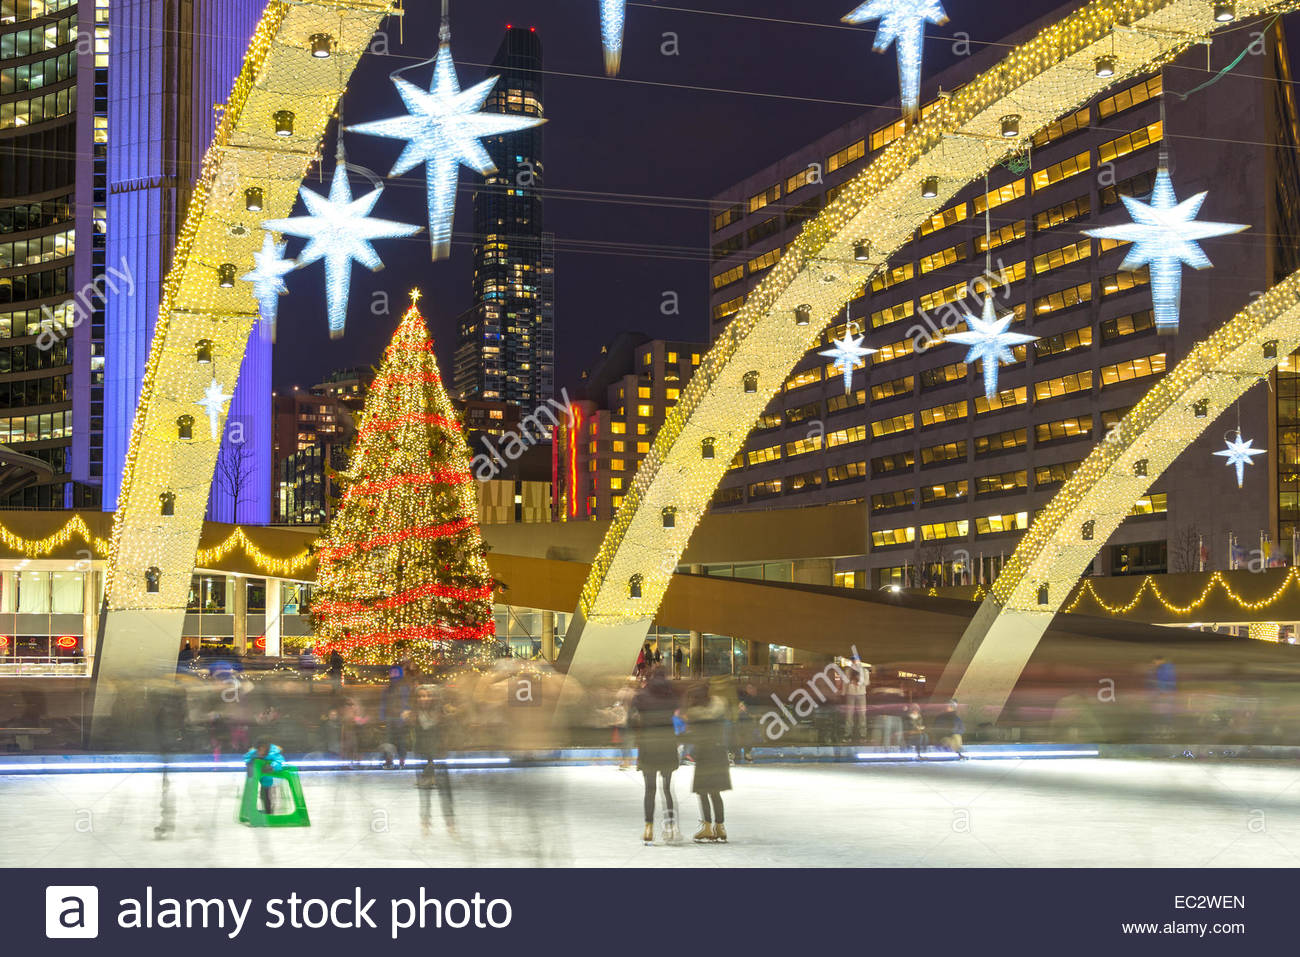 toronto christmas tree and decorations at city hall during the holiday season beautiful lights of